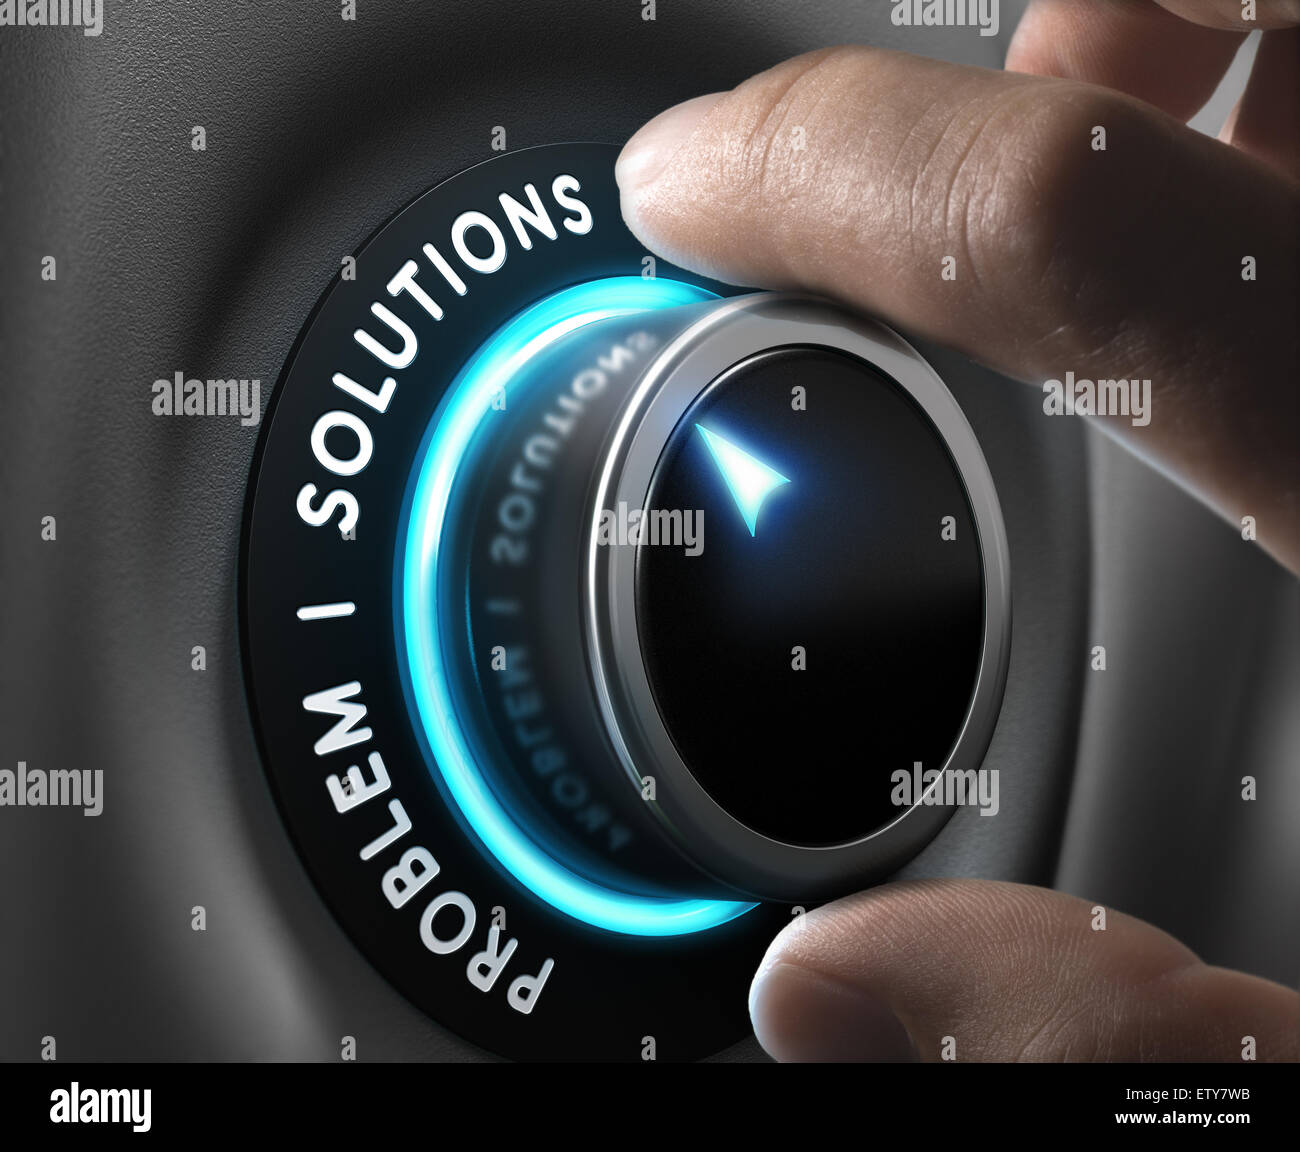 Solution switch positioned on the word solutions over grey background with blue lights. Concept of problem solving. - Stock Image